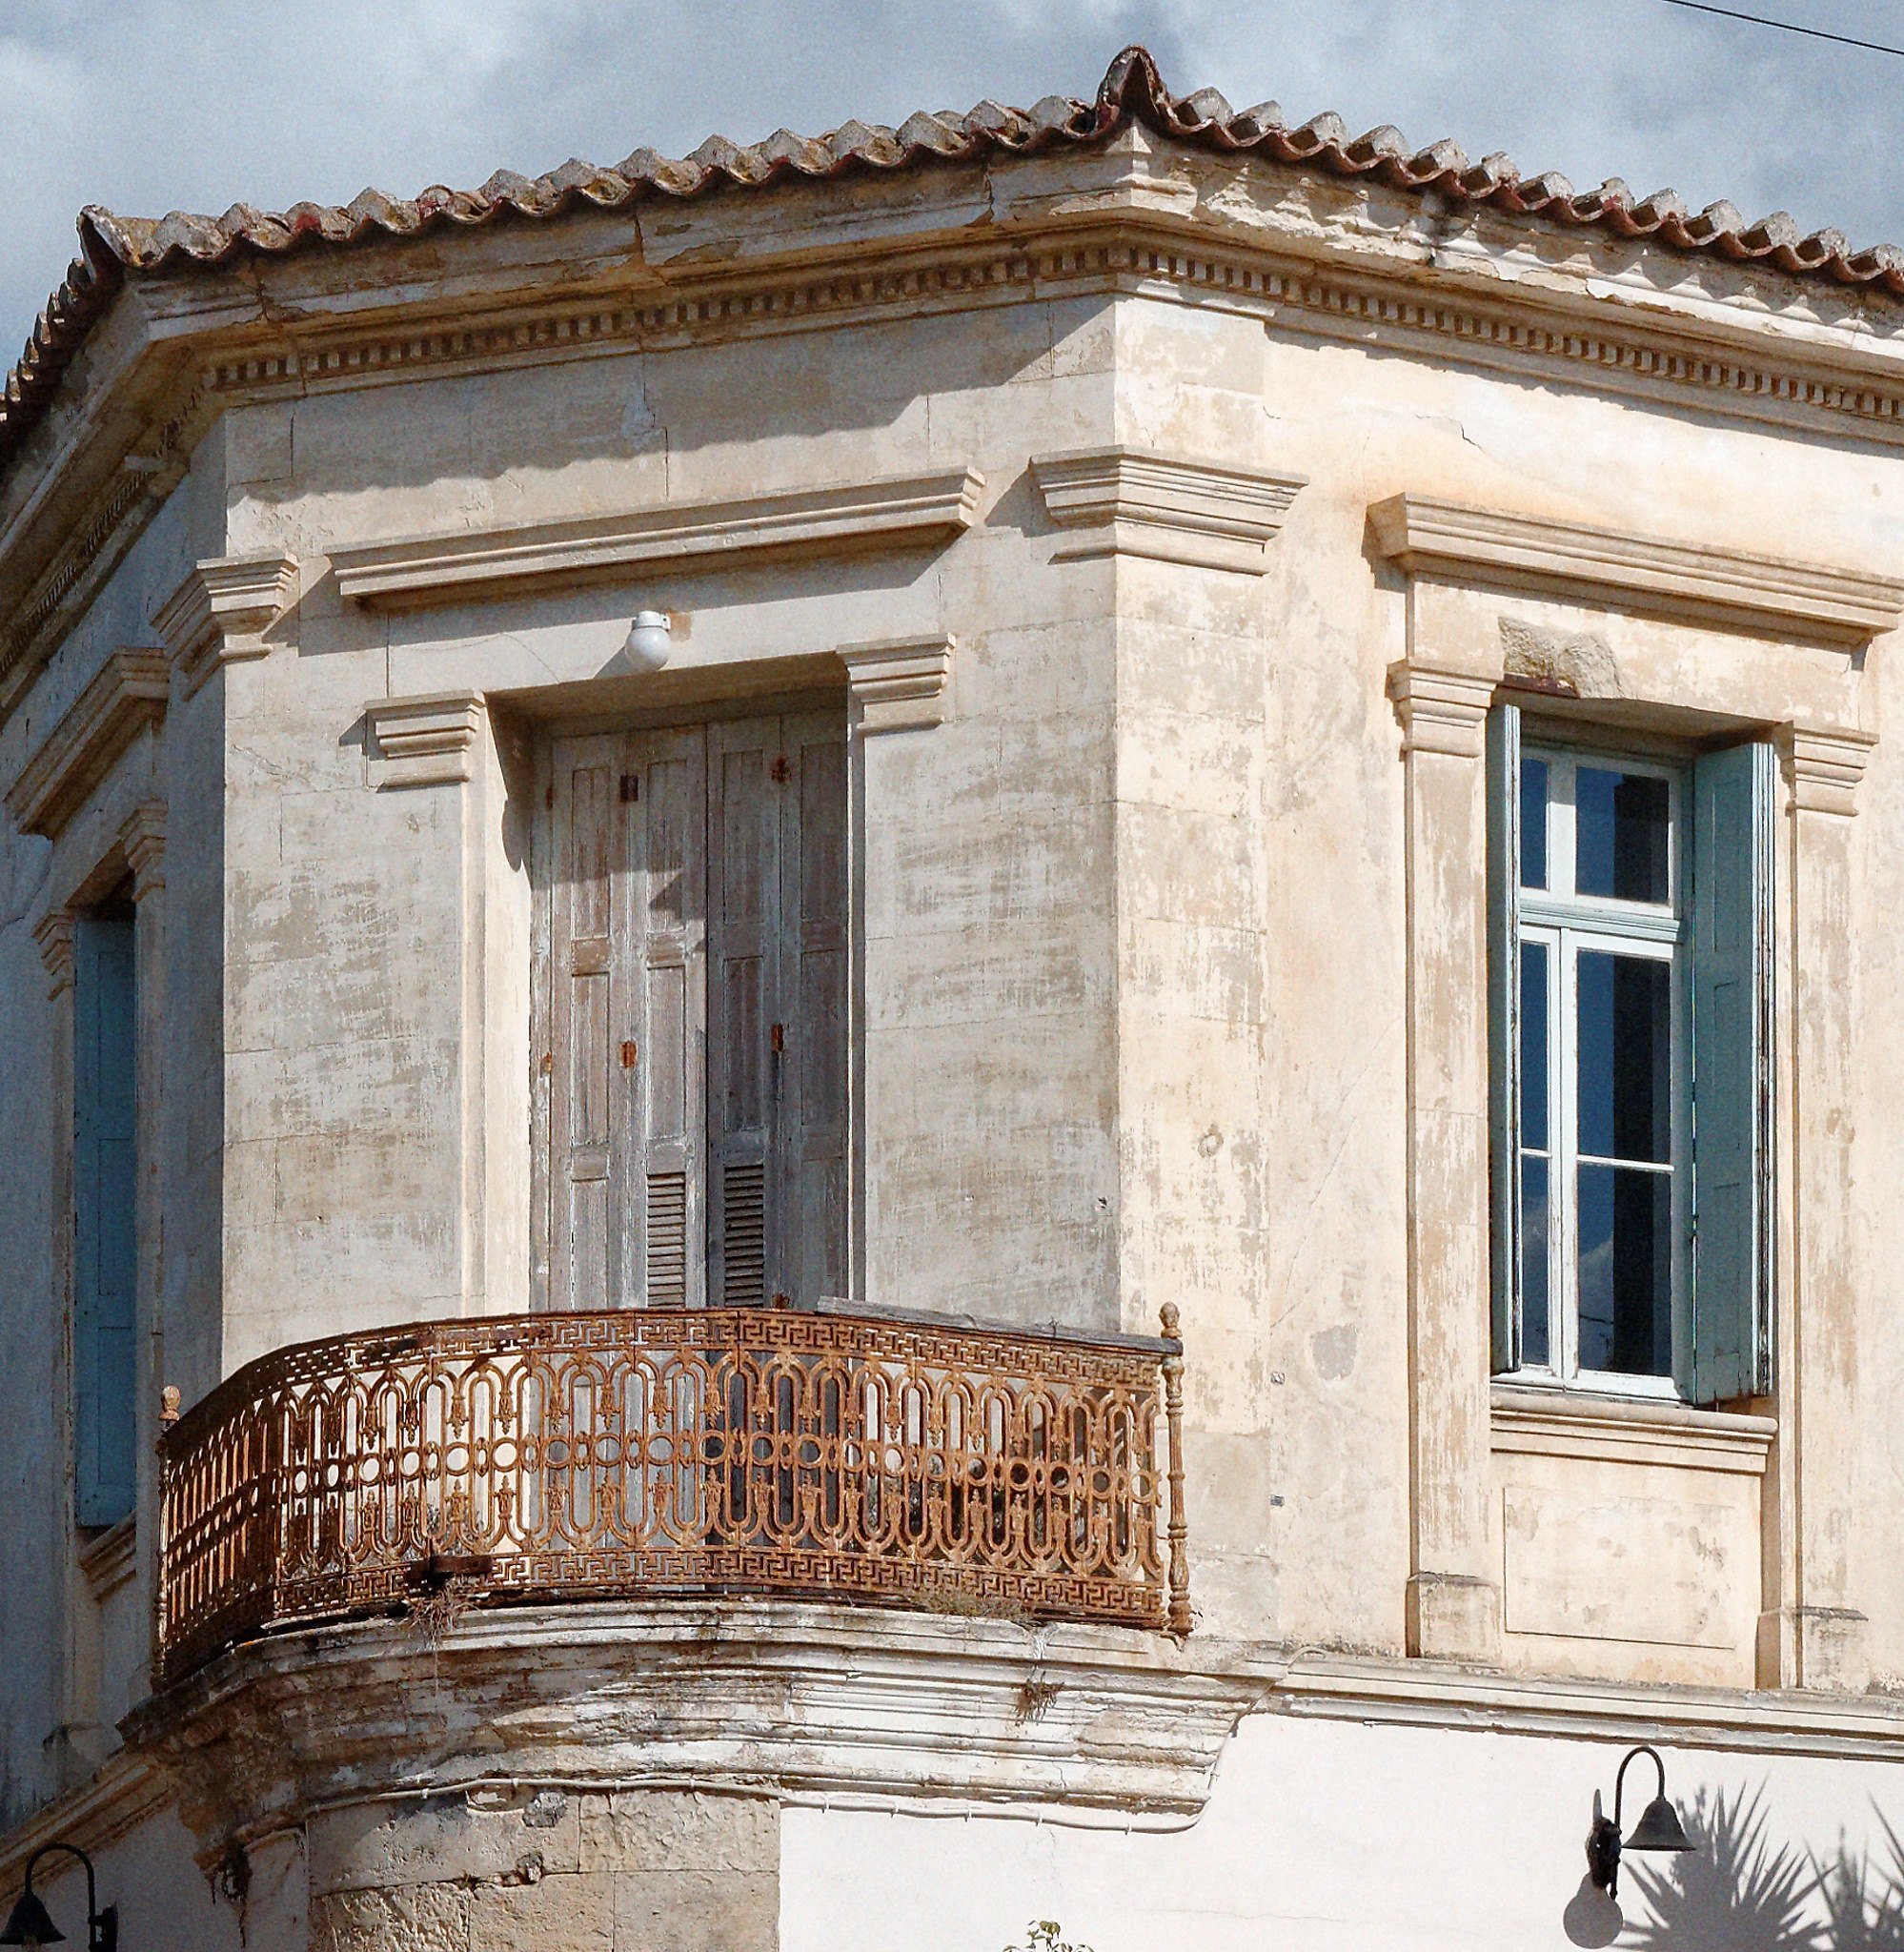 Neoclassical architecture gems at Chania